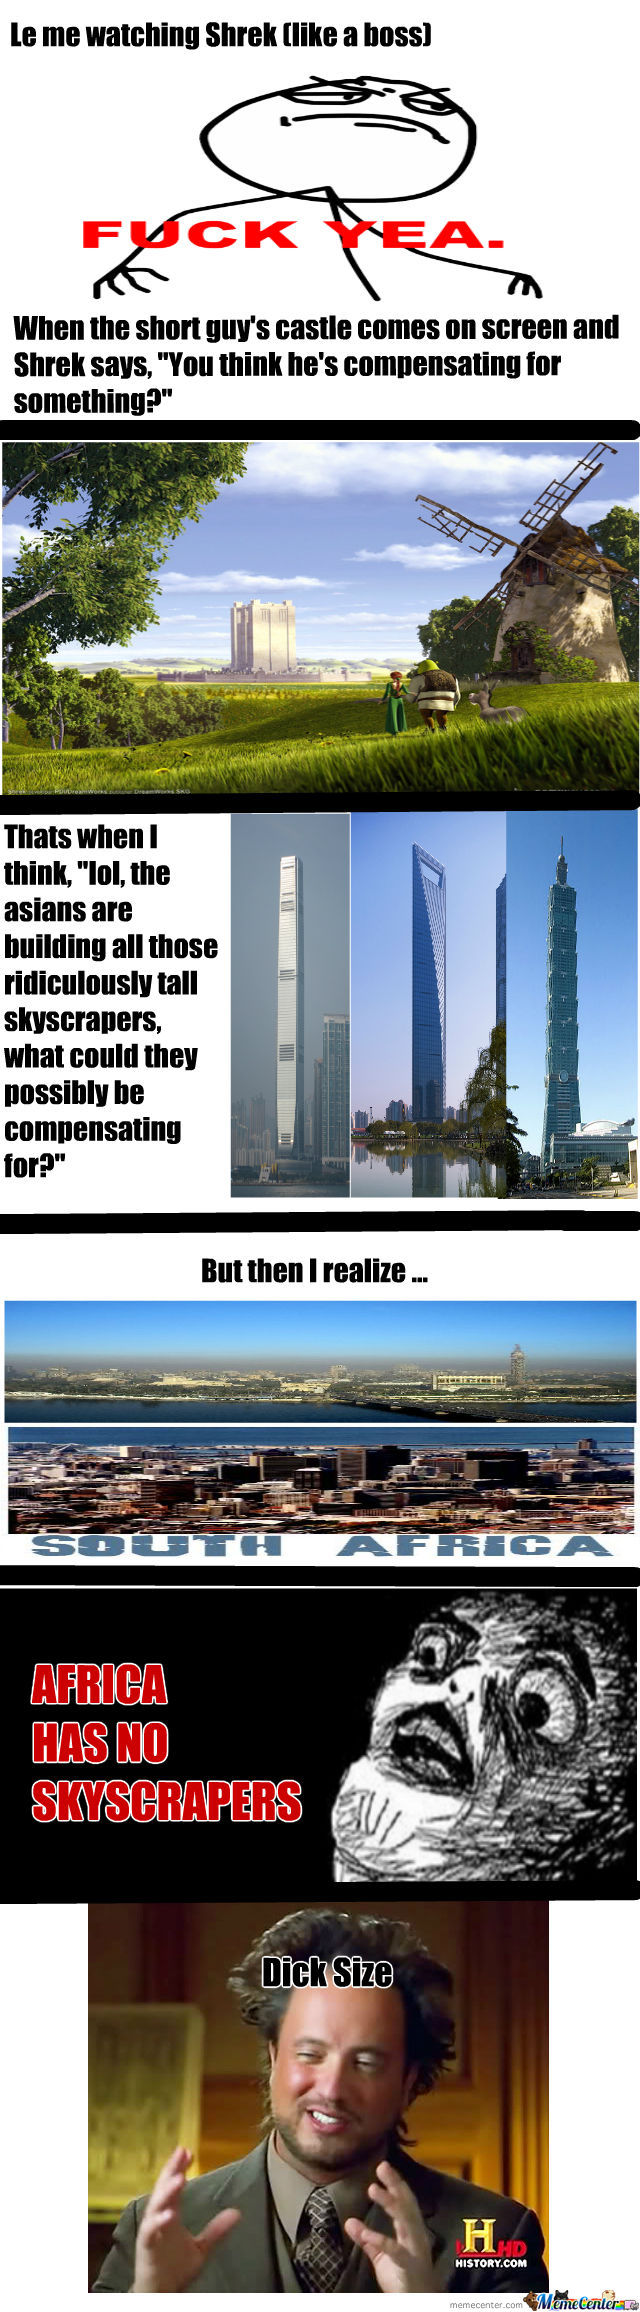 Why Africa Has No Skyscrapers (Besides How They're Poor As Shit)